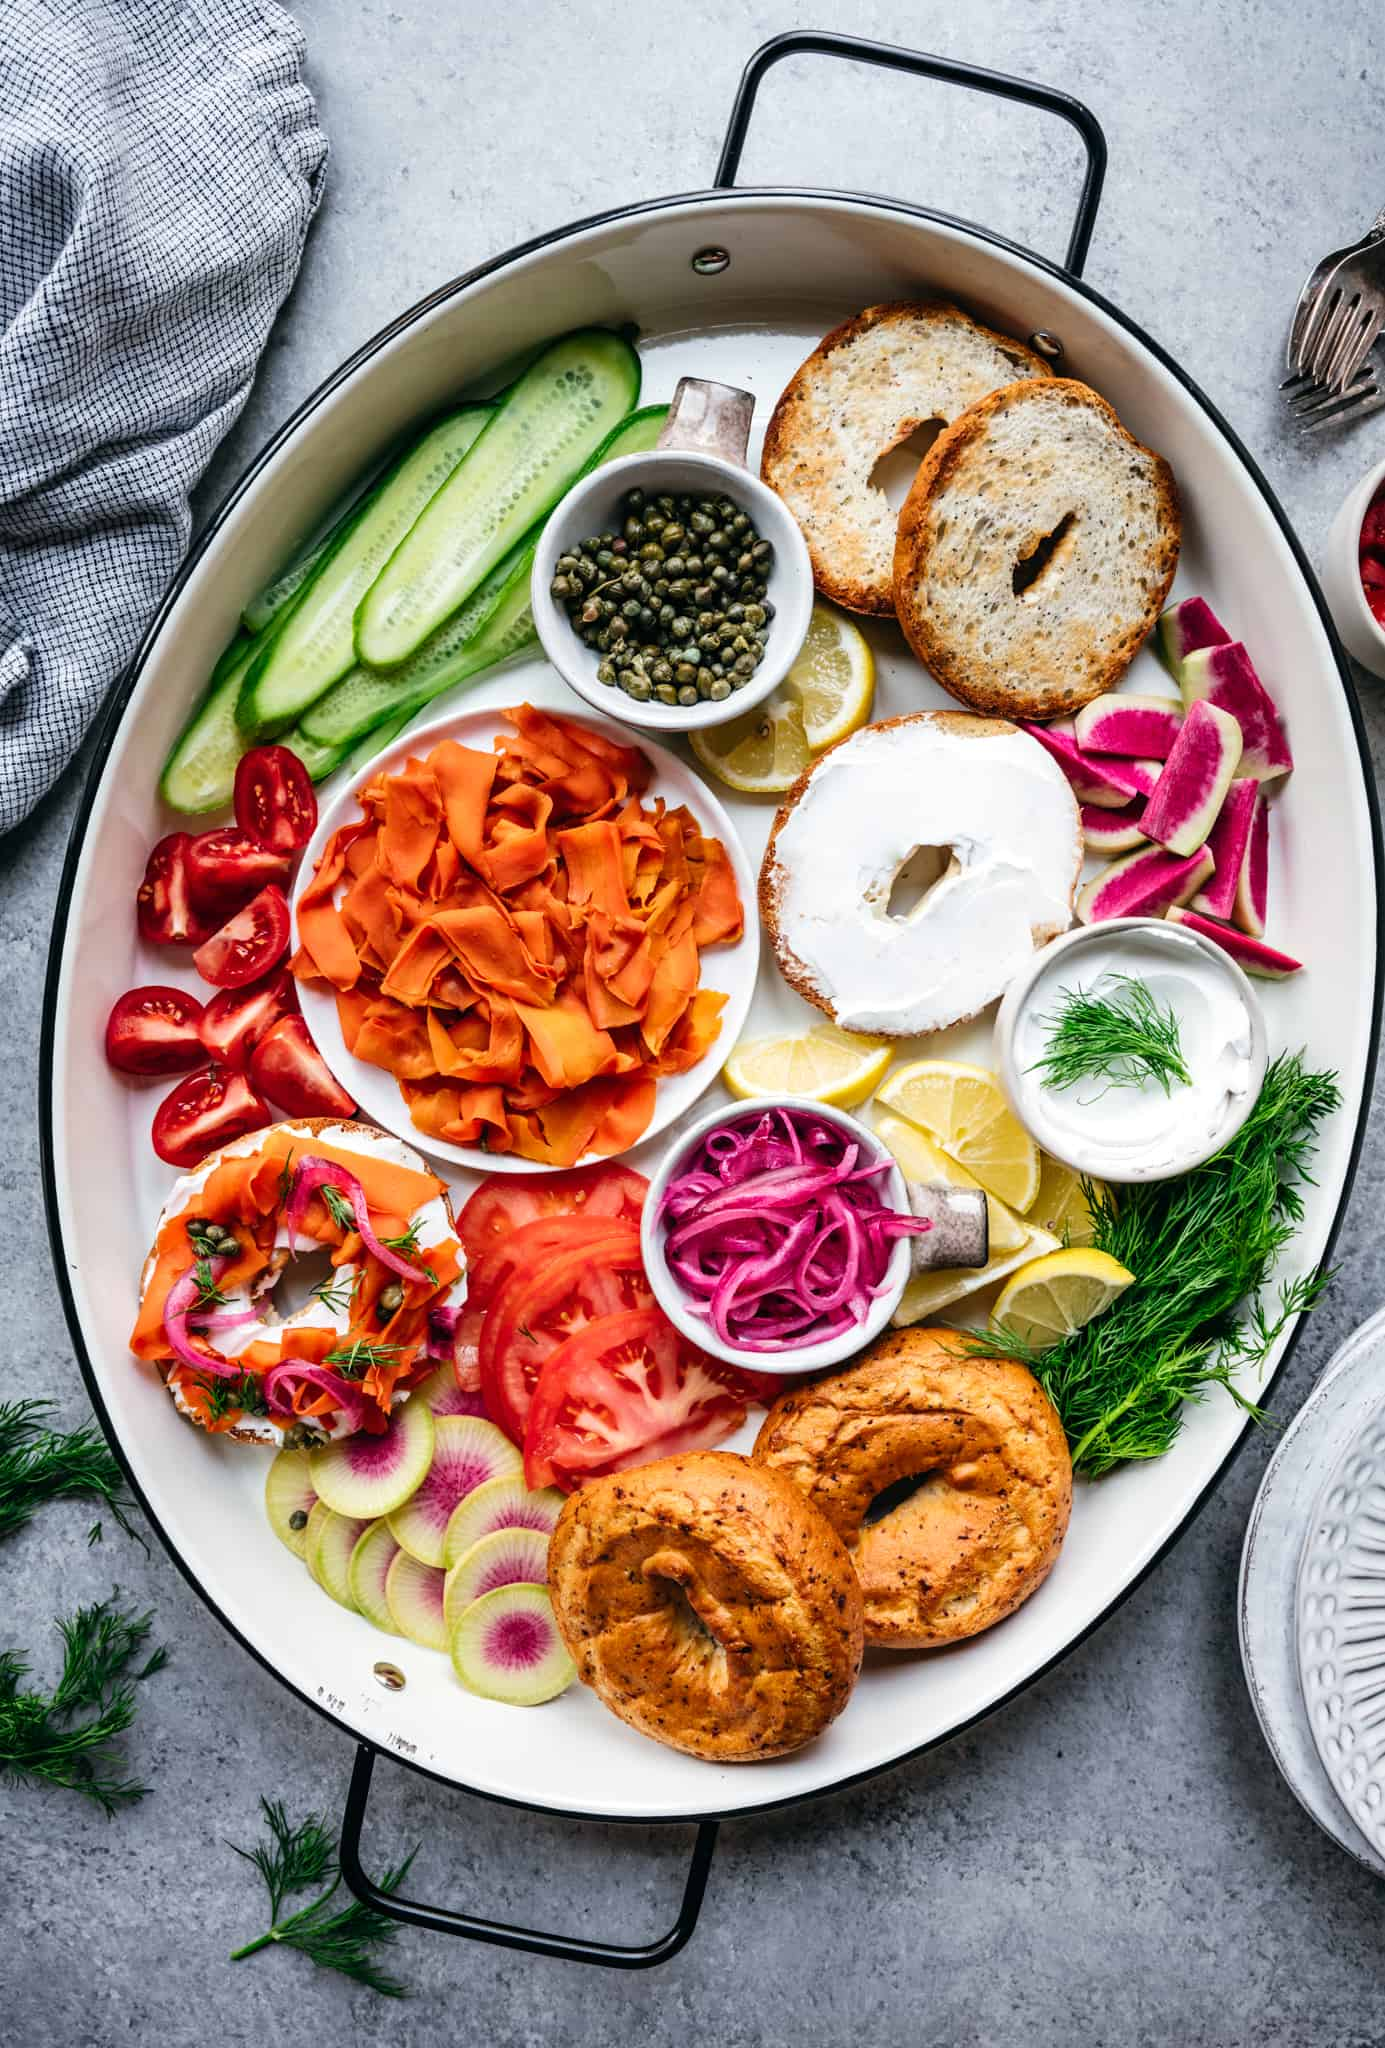 Overhead of a platter with homemade vegan carrot lox, bagels, cream cheese and other toppings for brunch